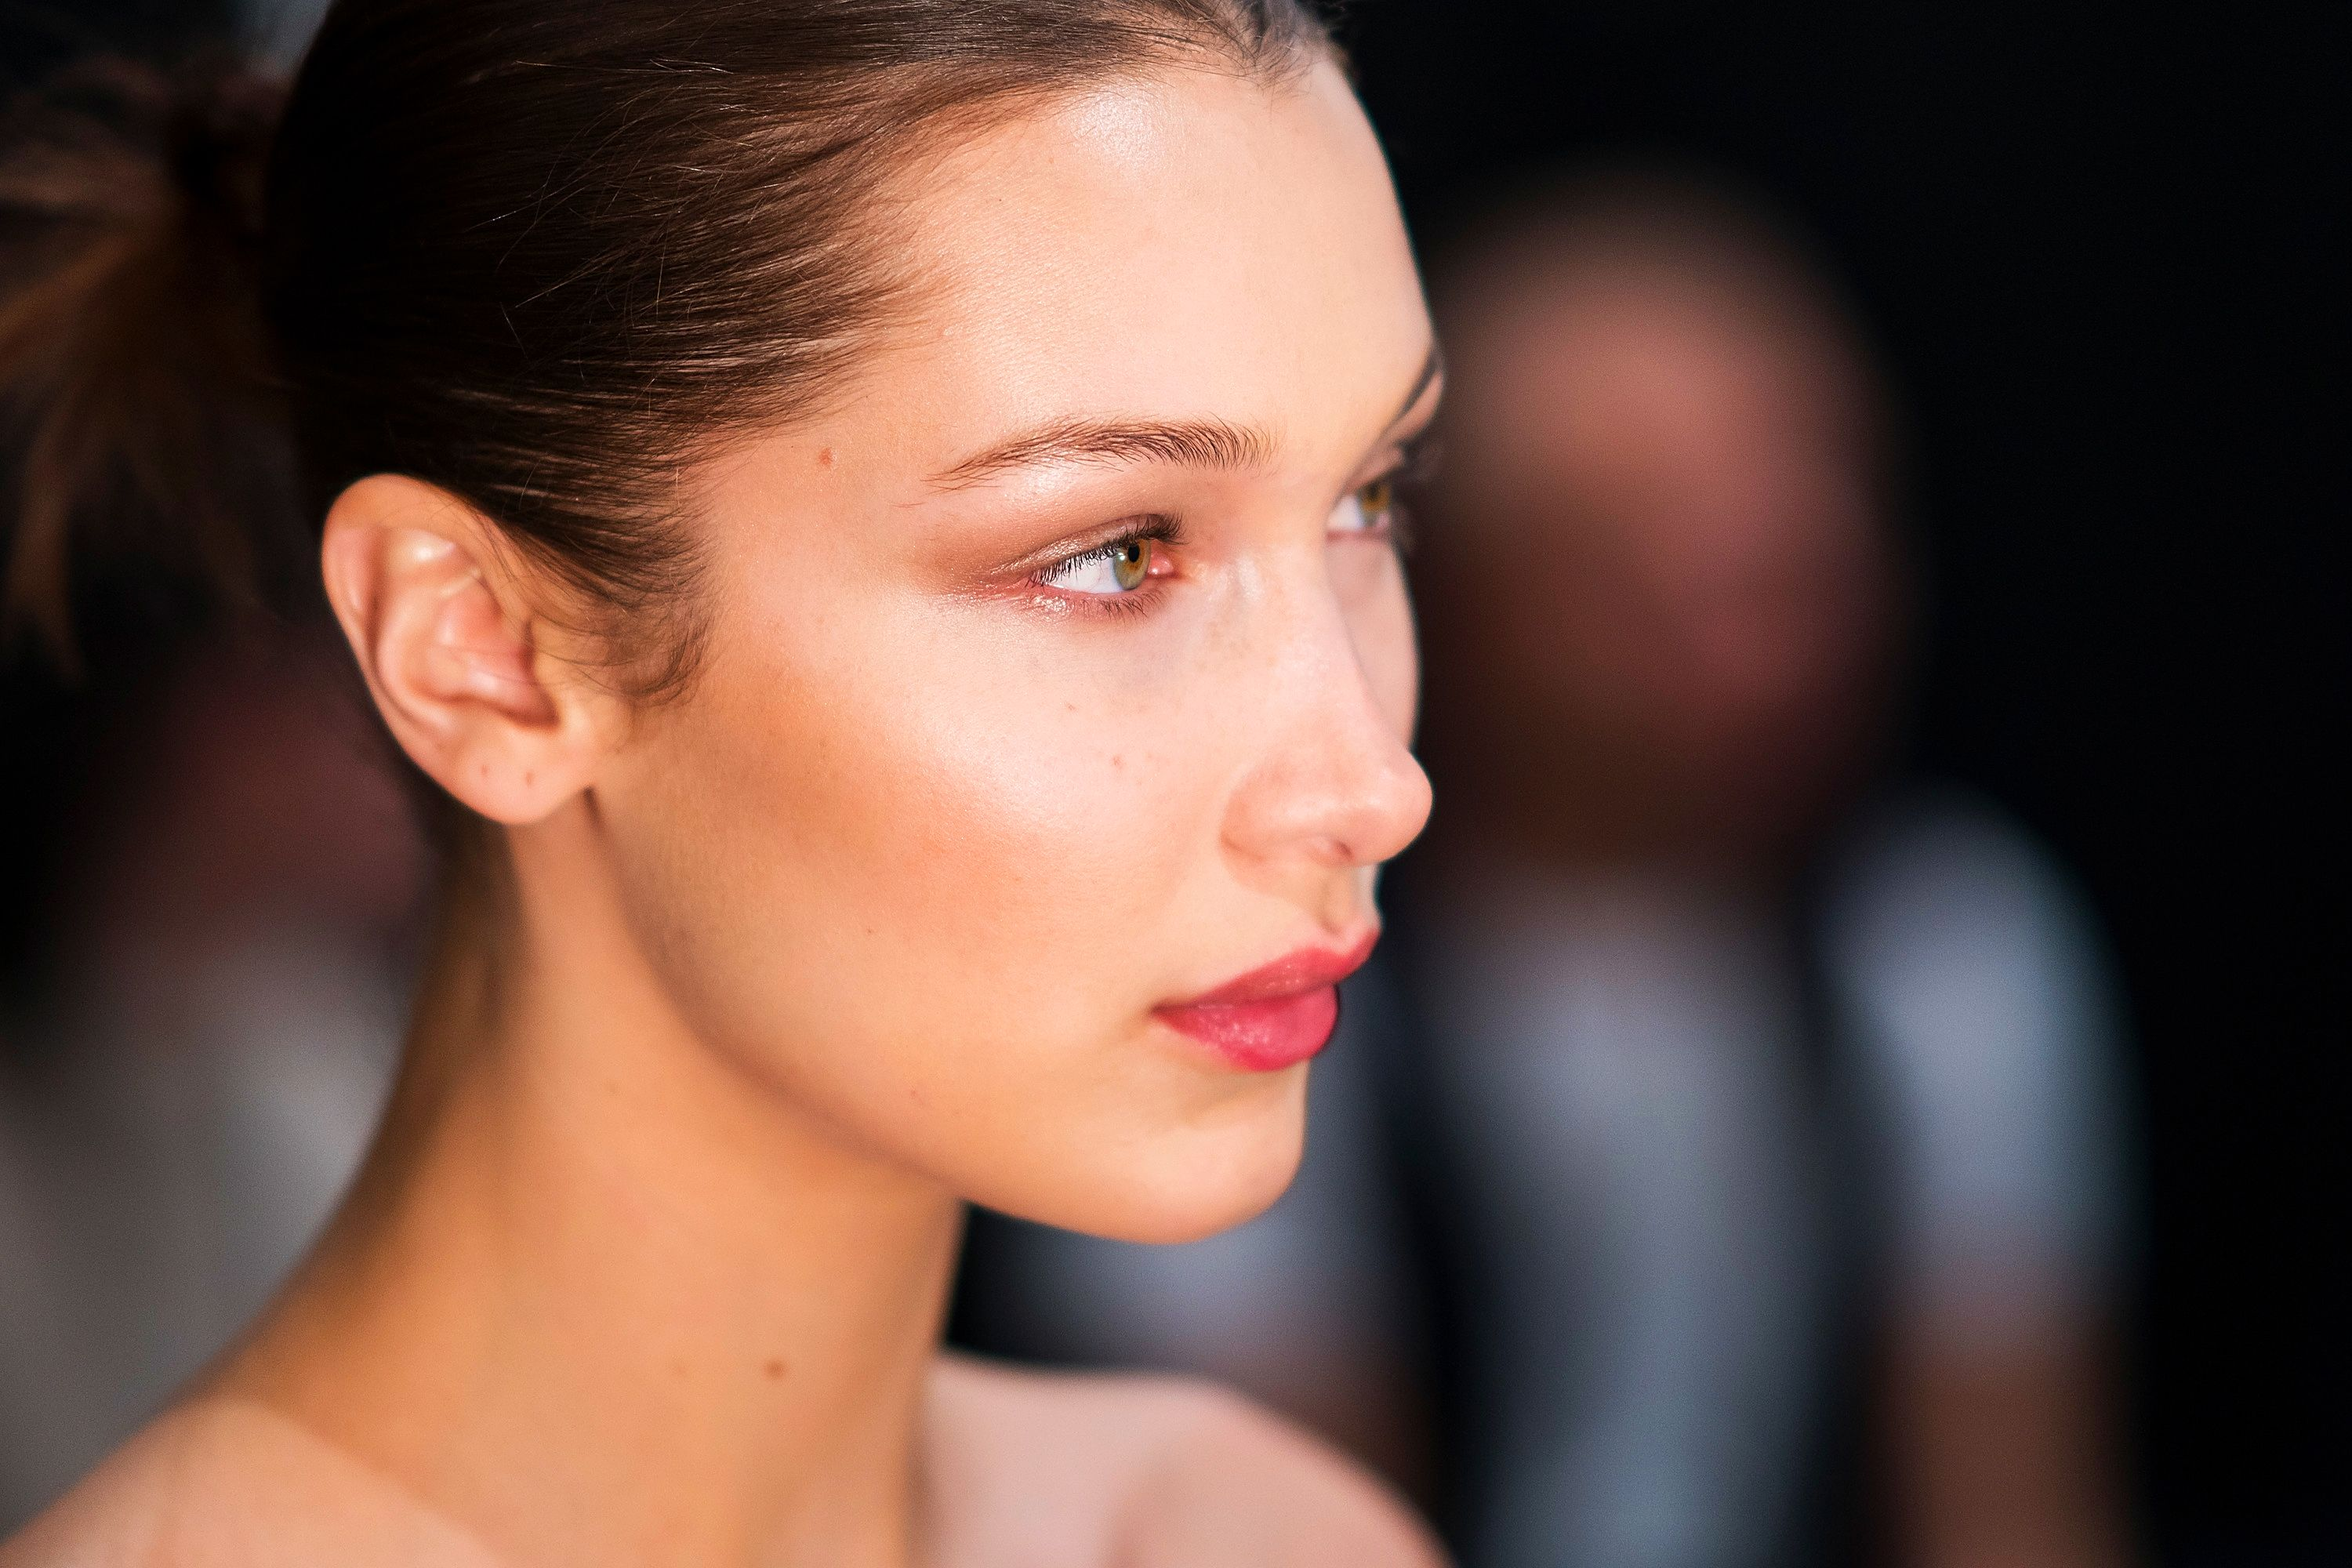 Cakey Makeup: 10 Tricks to Fix Caking and Creasing